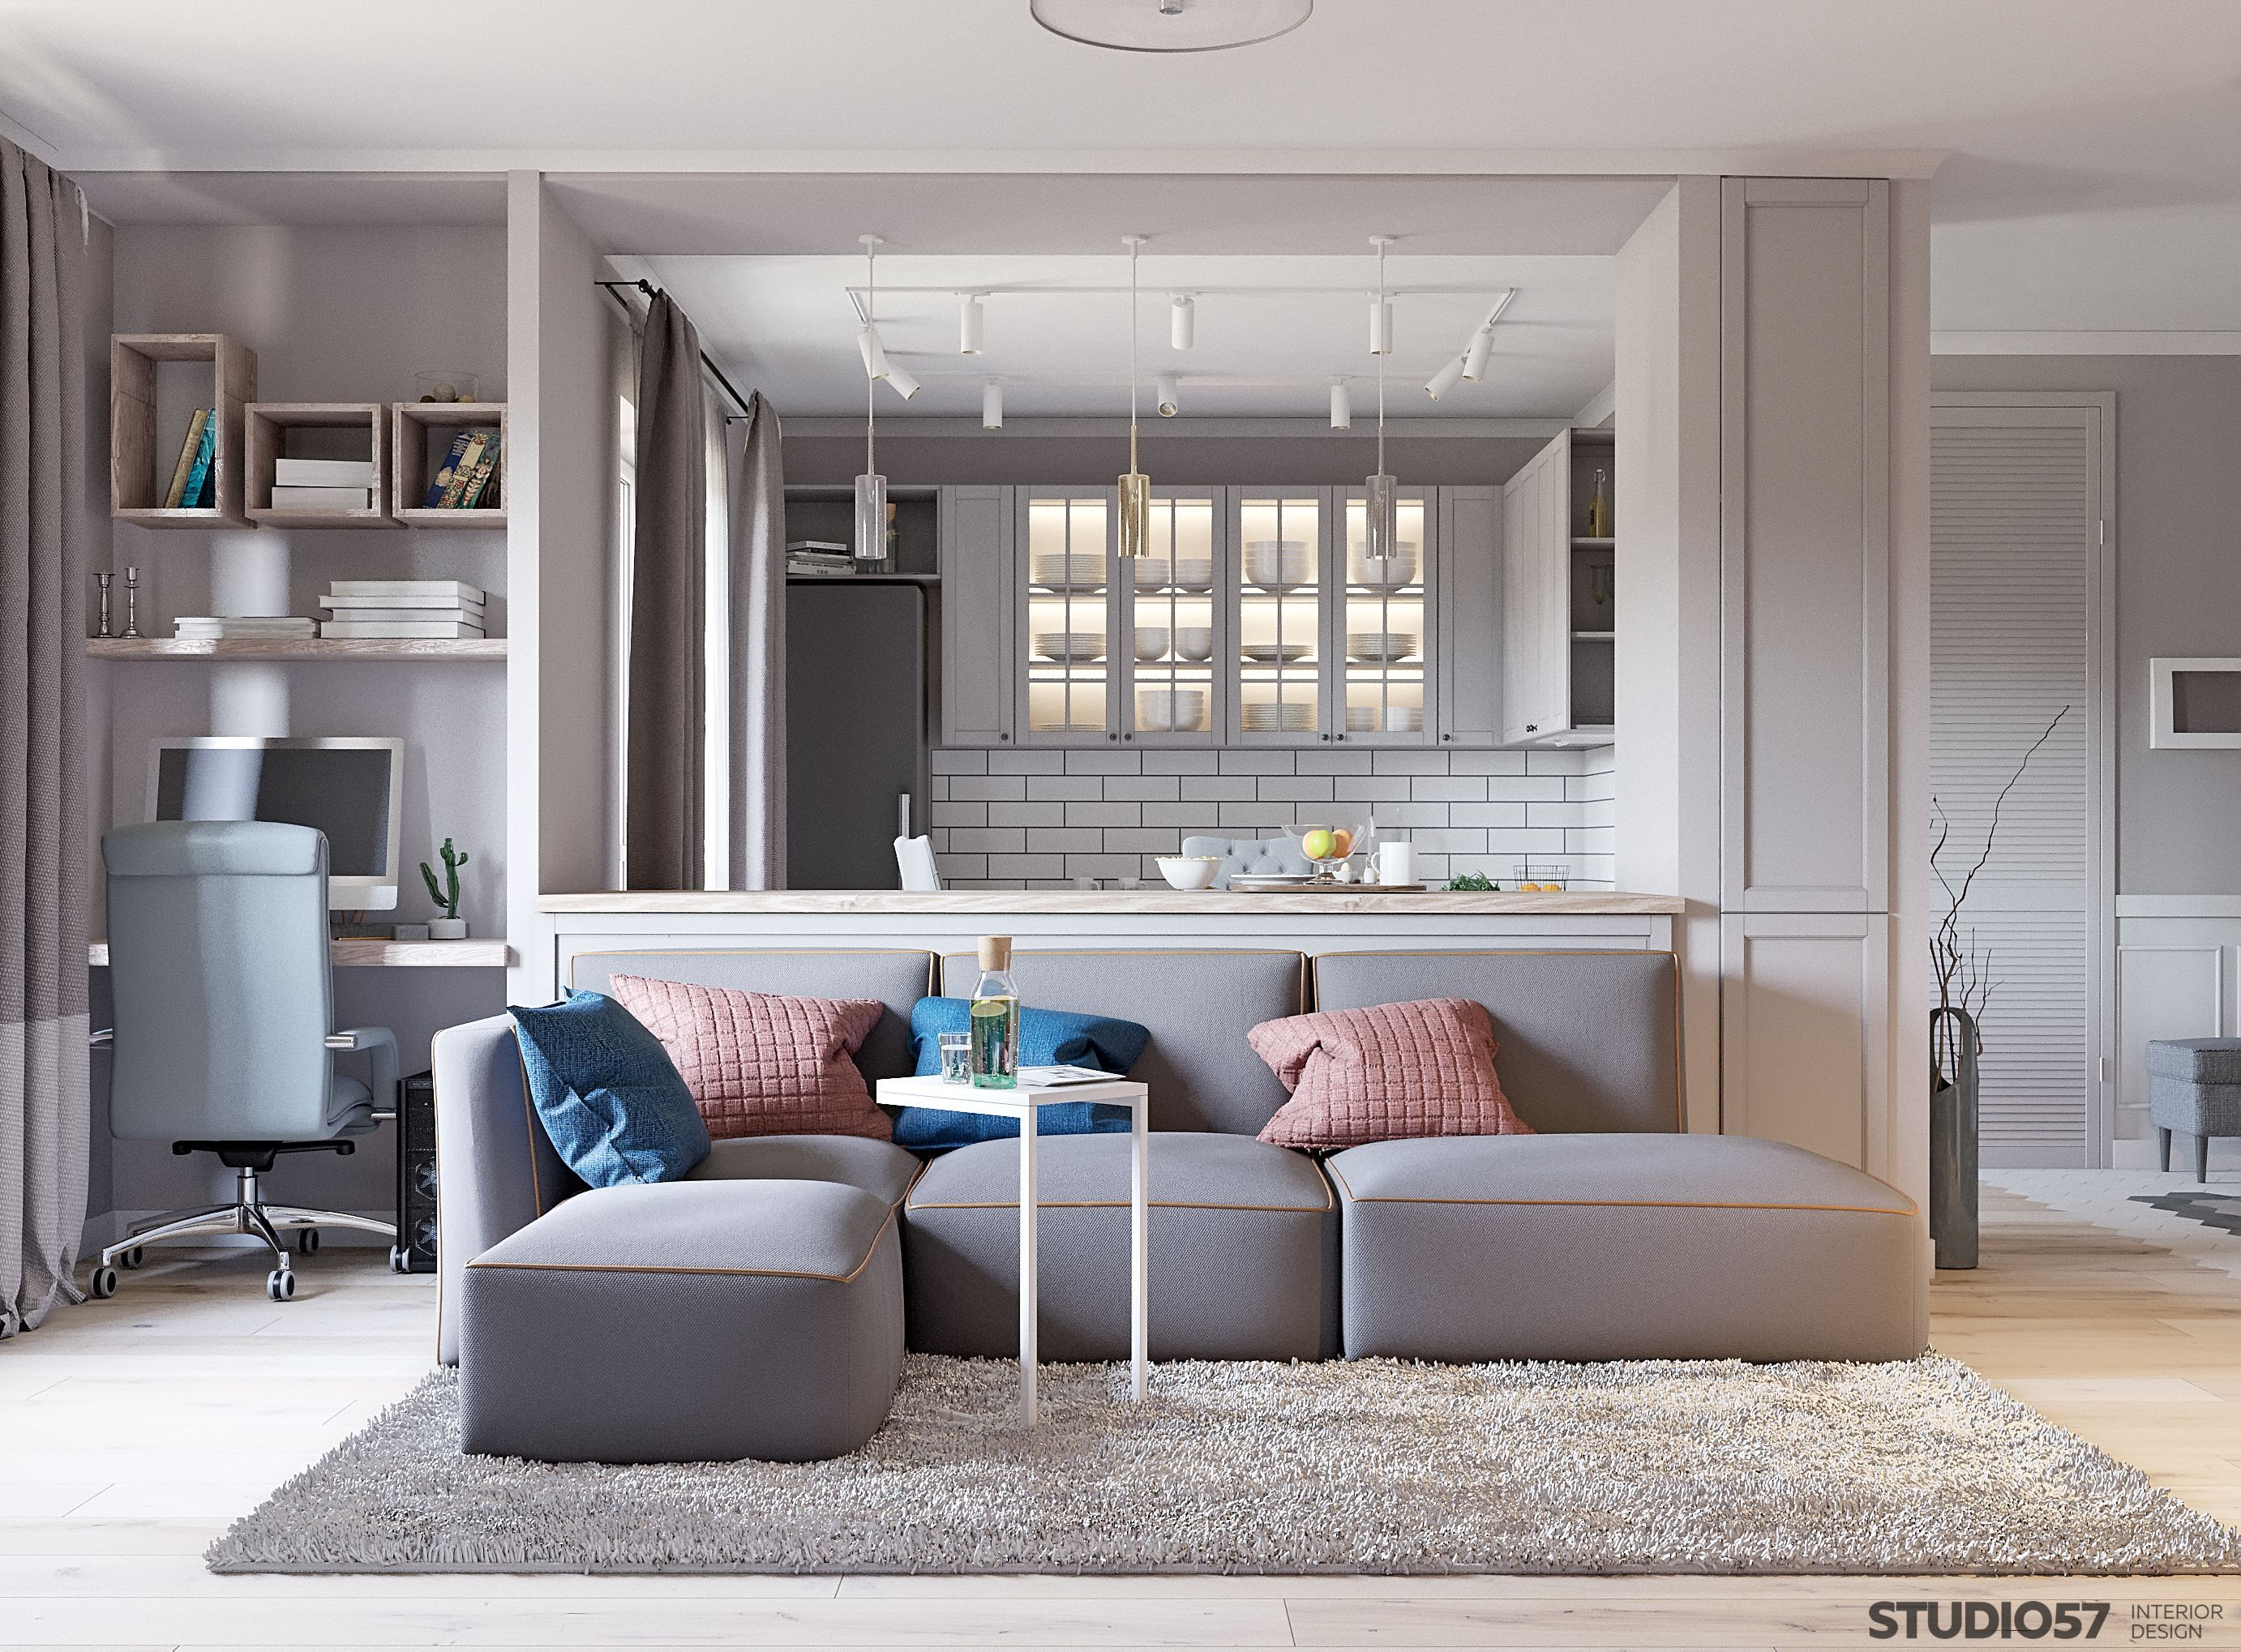 Clic Style With White Furniture For An Apartment On Lozhinskaya Street The Design Of Area 75 Square Meters In